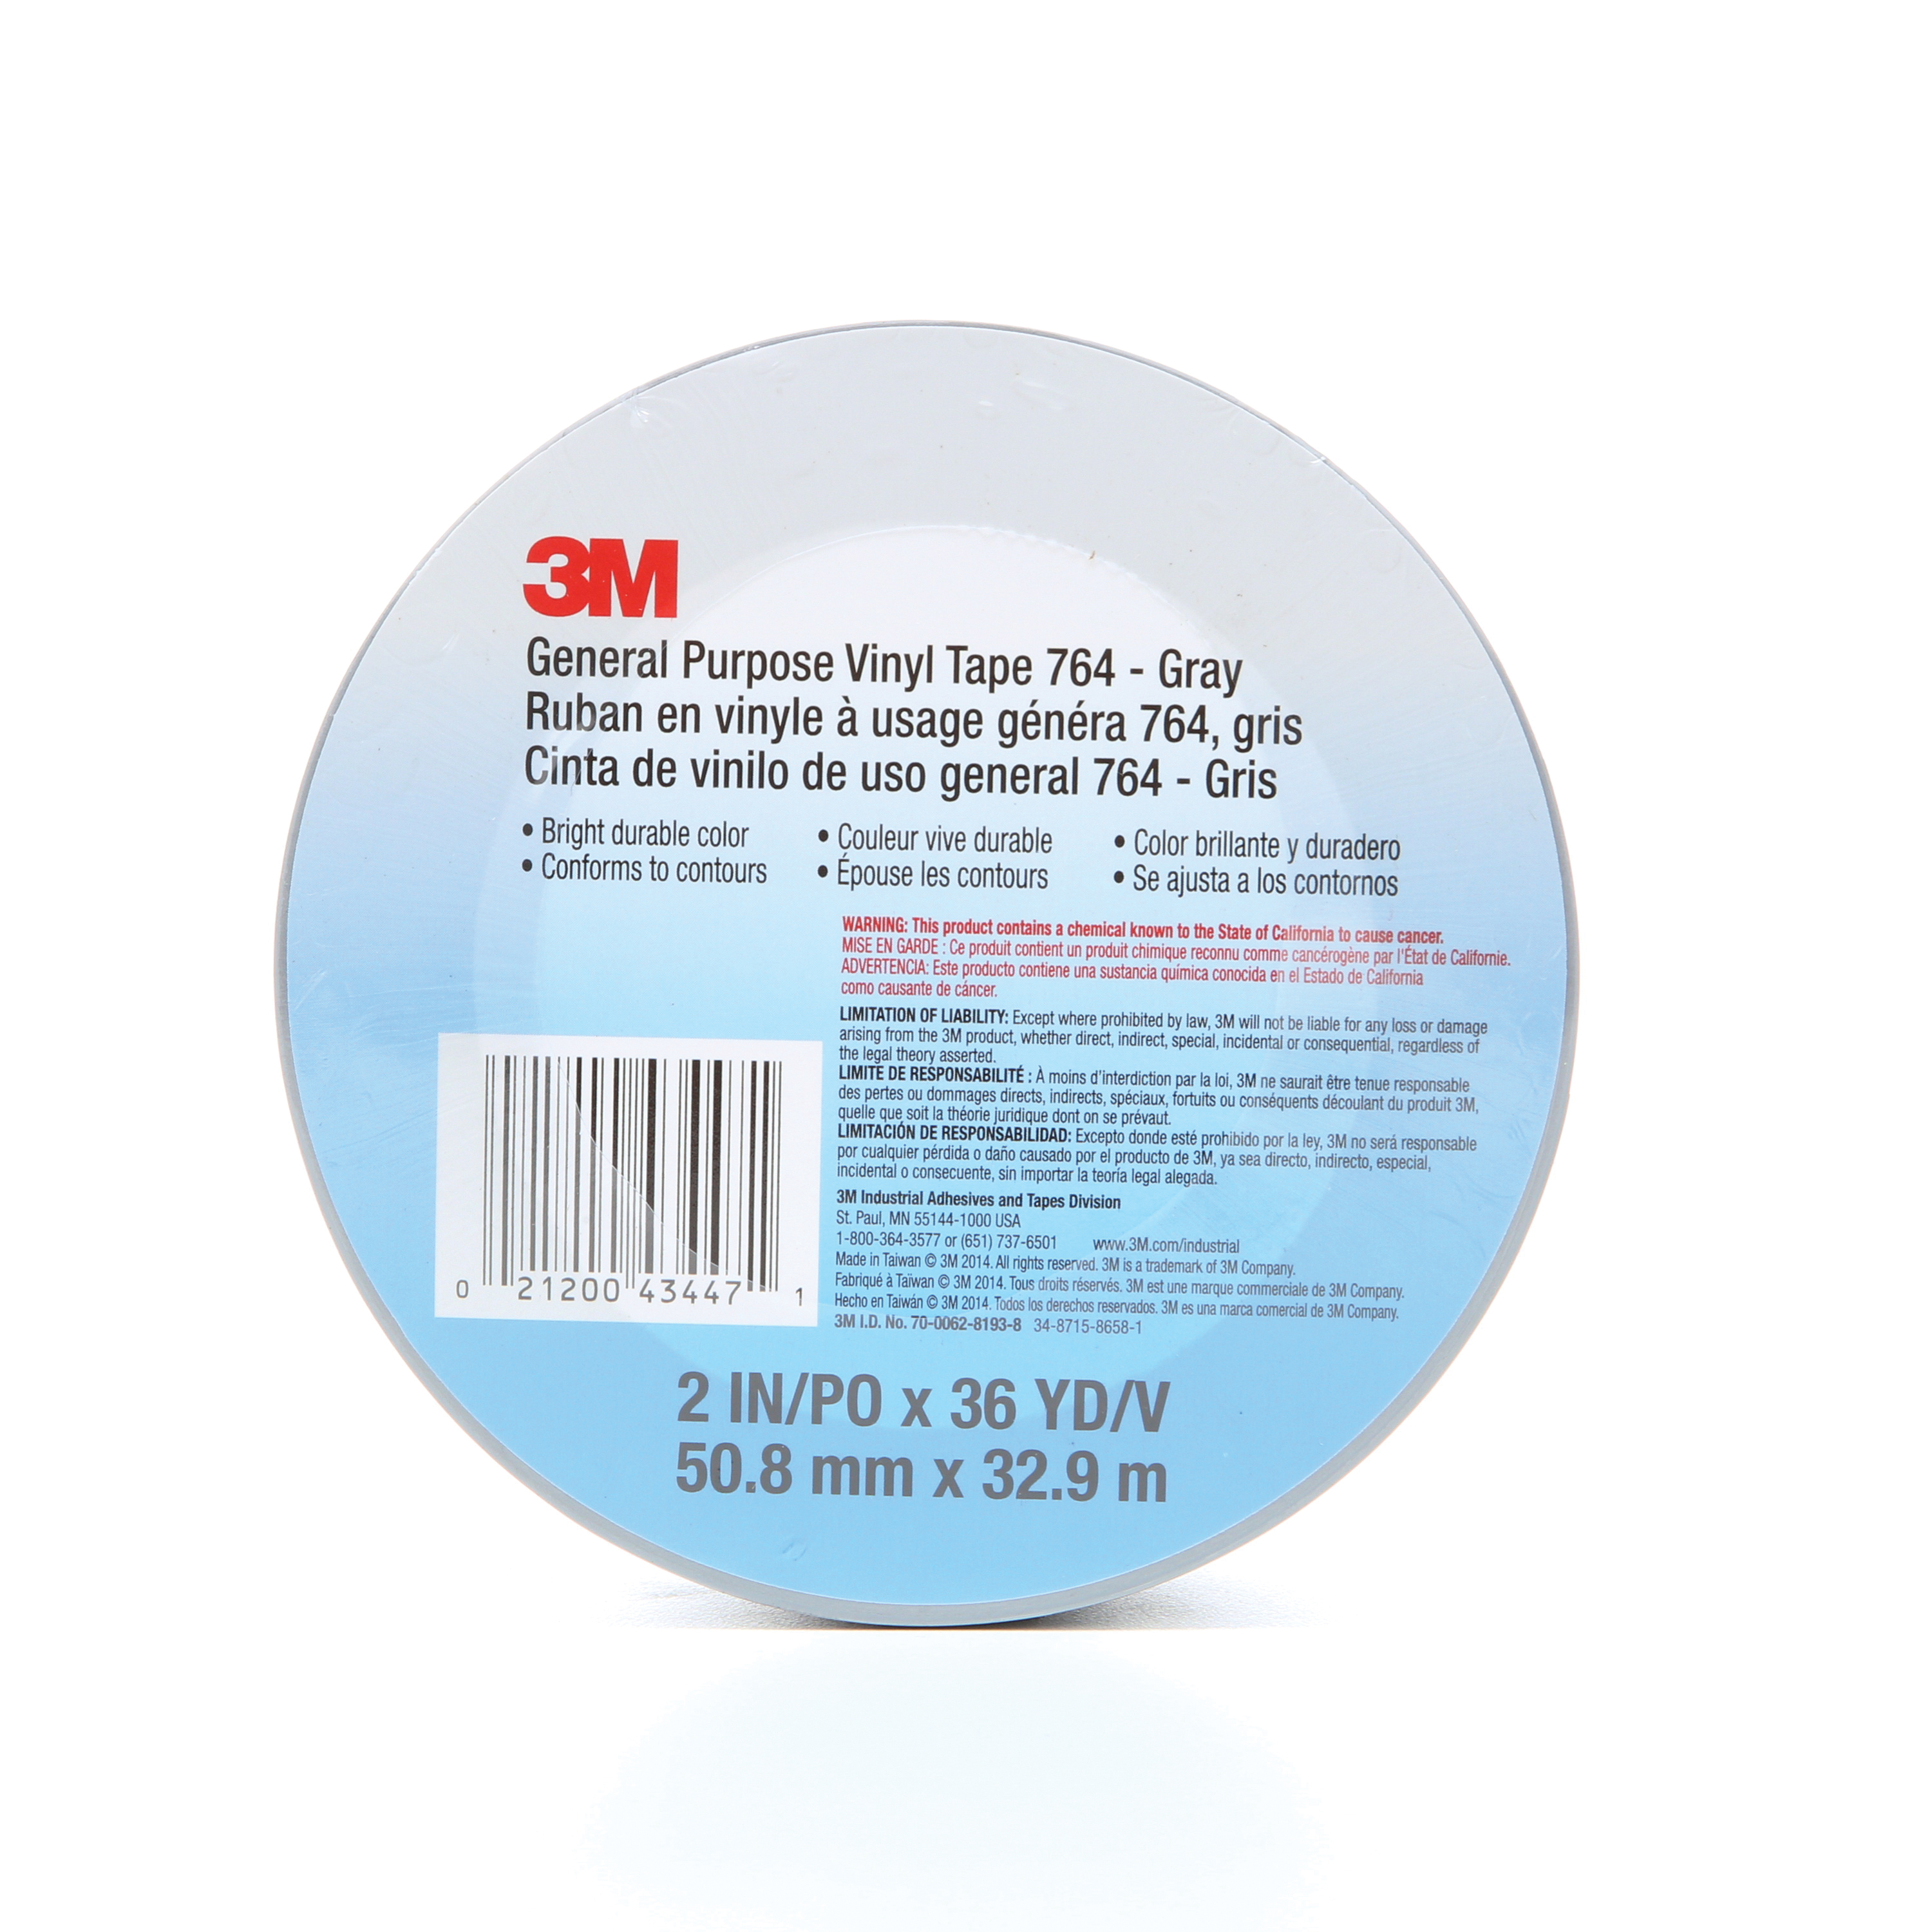 3M™ 021200-43447 General Purpose Vinyl Tape, 36 yd L x 2 in W, 5 mil THK, Rubber Adhesive, PVC Backing, Gray